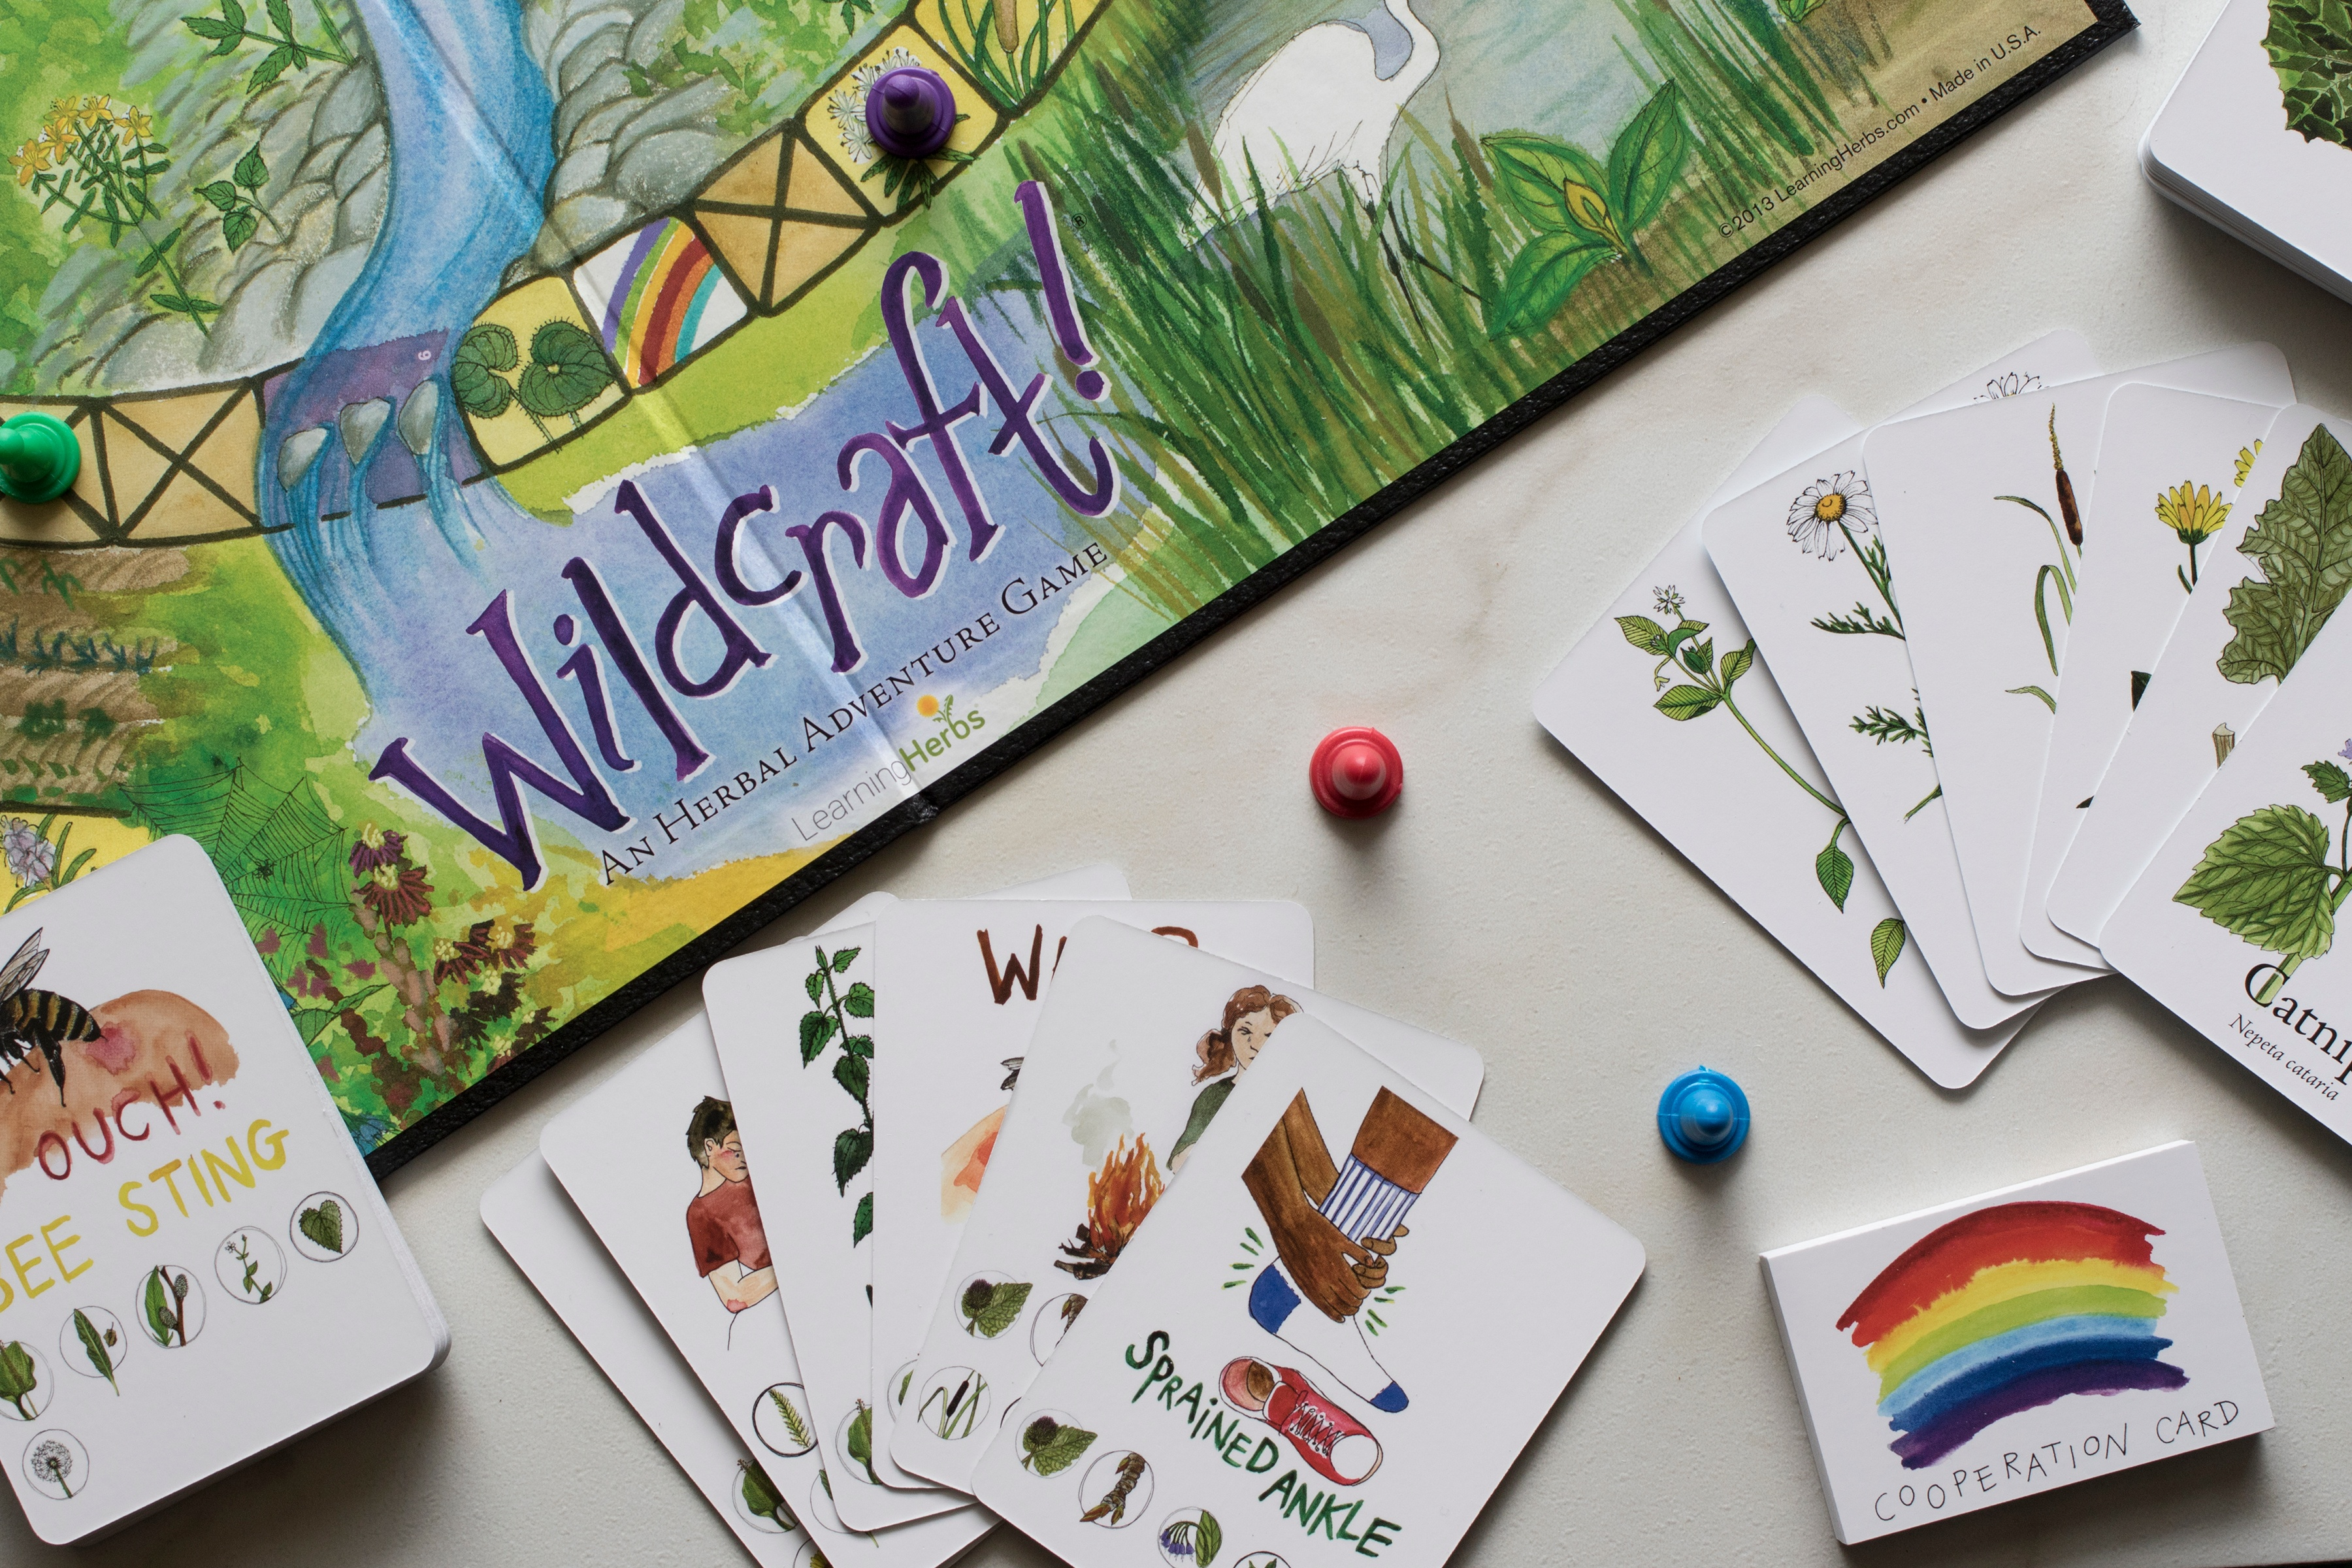 pieces and board from wildcrafting herbal board game